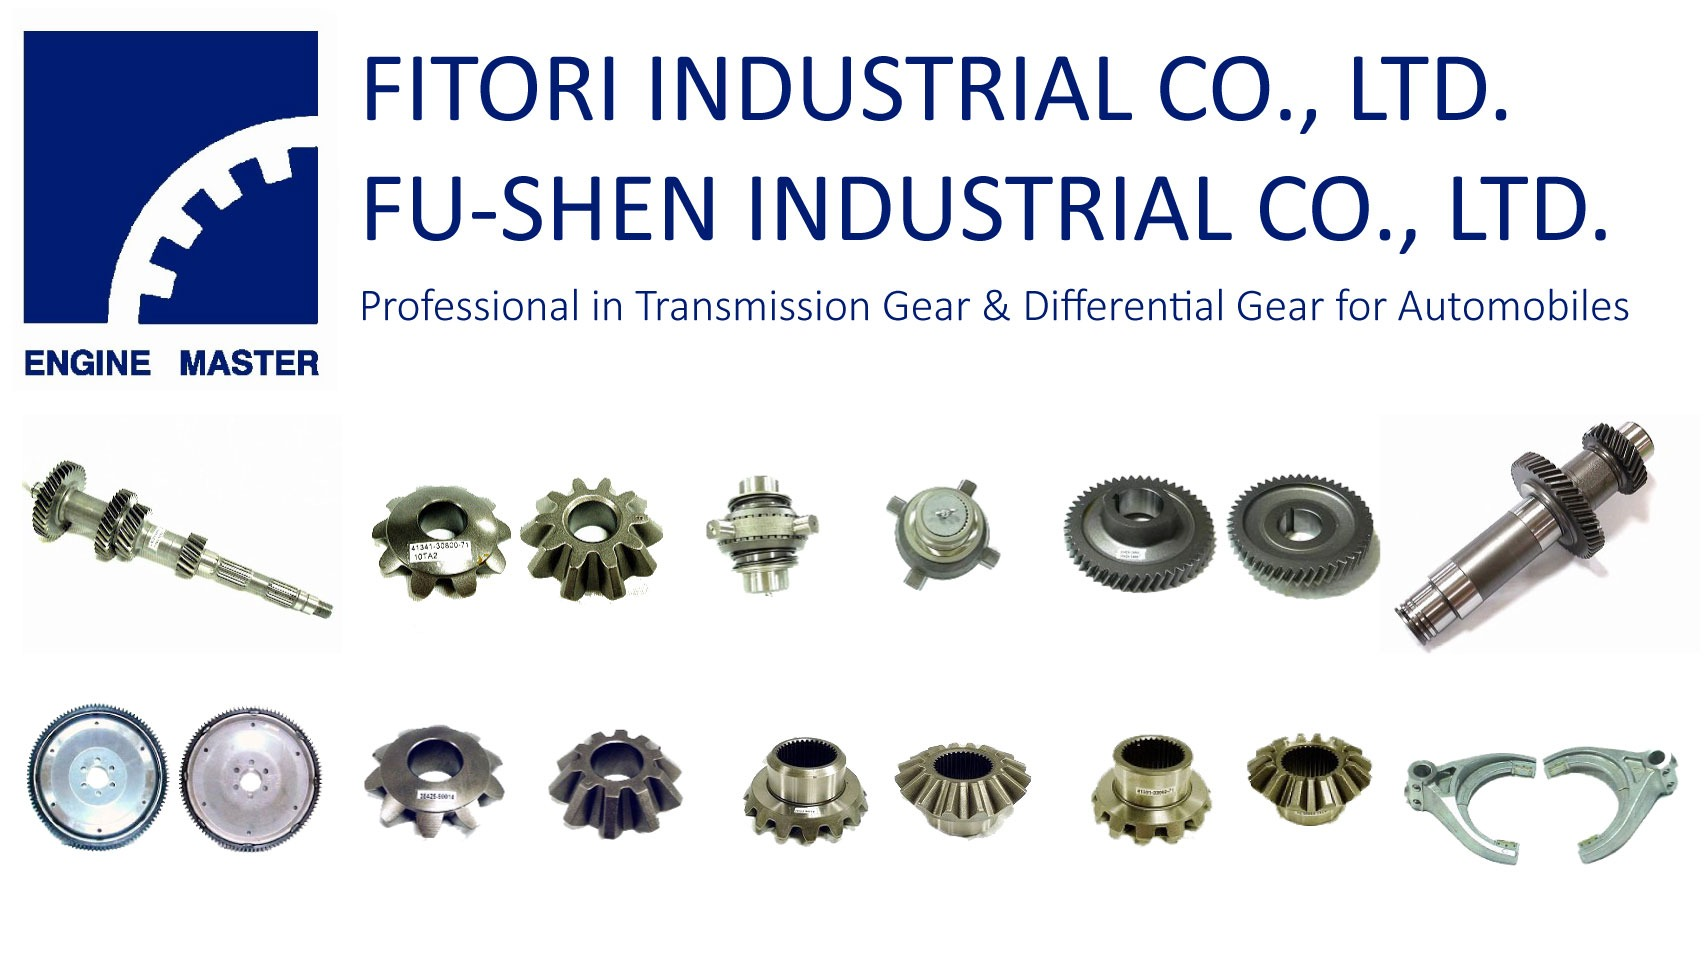 Transmission Parts for Forklift made by FITORI INDUSTRIAL CO., LTD. (FU-SHEN) 馥勝工業股份有限公司 – MatchSupplier.com